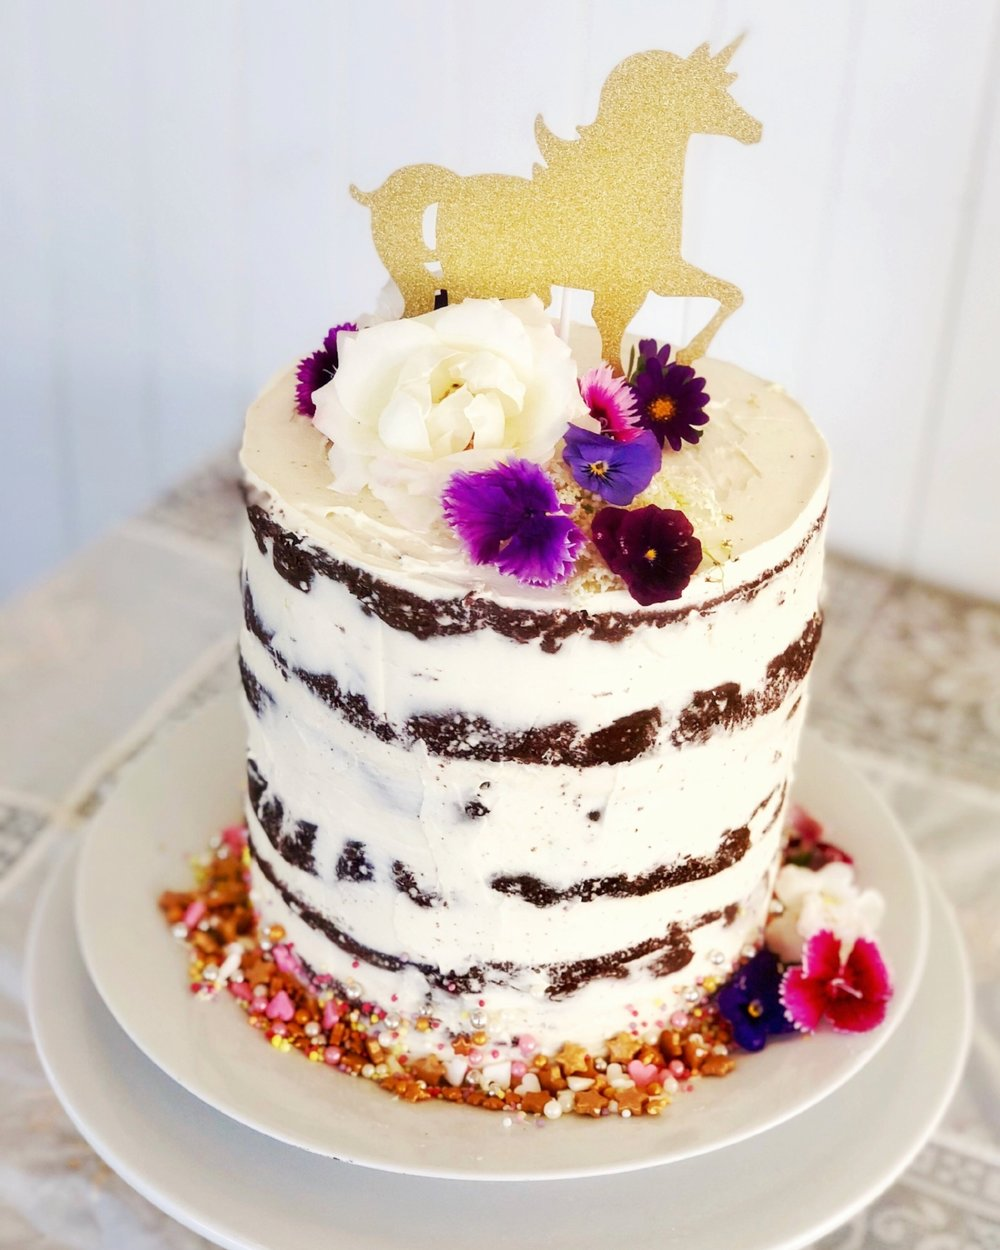 CELEBRATION CAKE $100/ serves up to 30 - Our chef can customise a beautiful semi-naked style celebration cake adorned with fresh flowers to provide a decadent finale to your child's party.